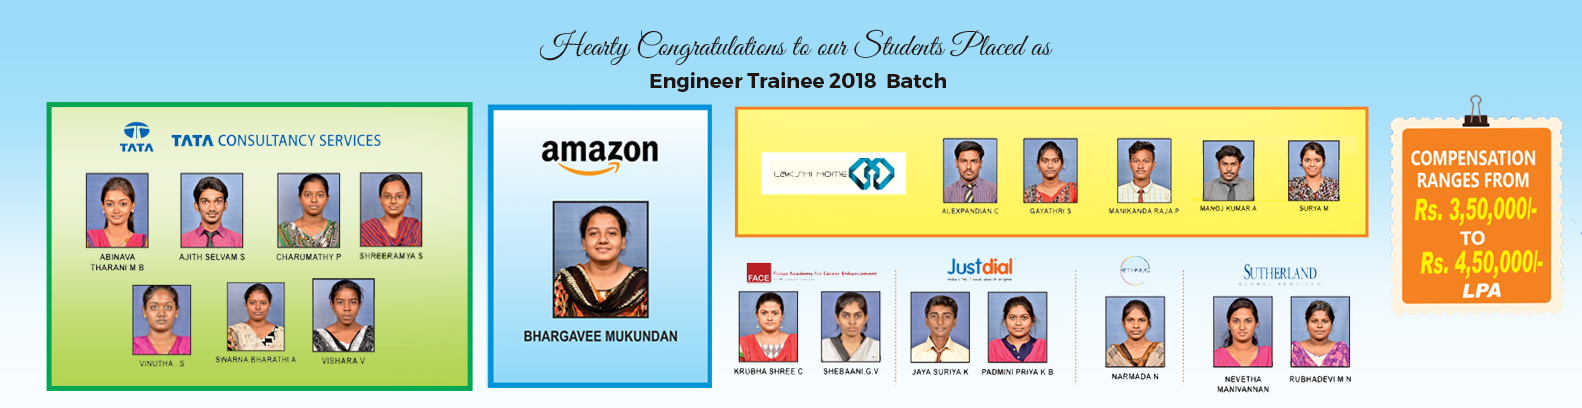 Engineer_trainee_2018